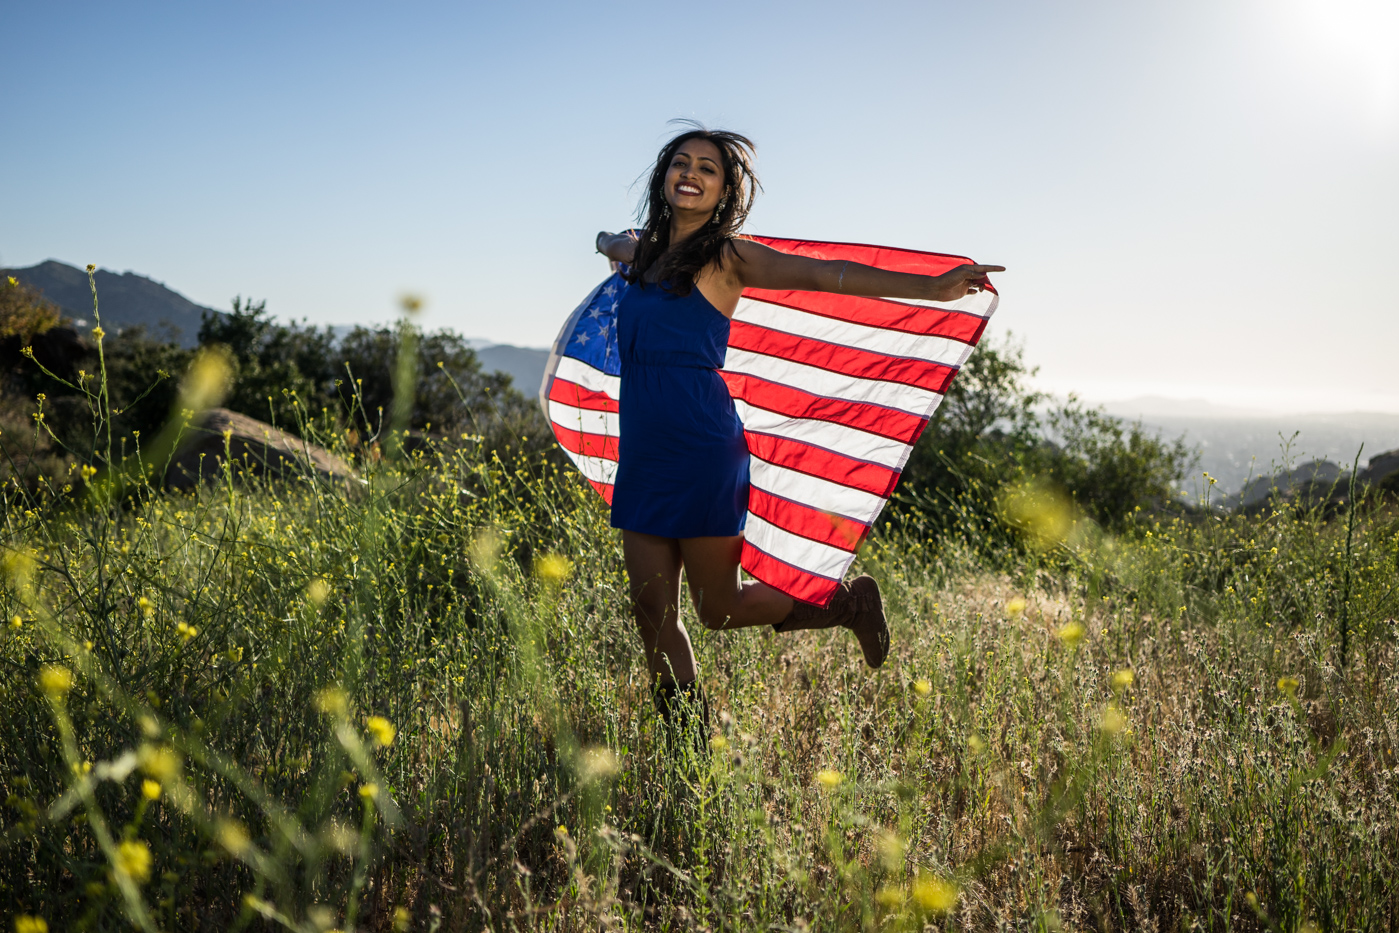 American woman jumping with flag portrait in grassy meadow landscape at sunset